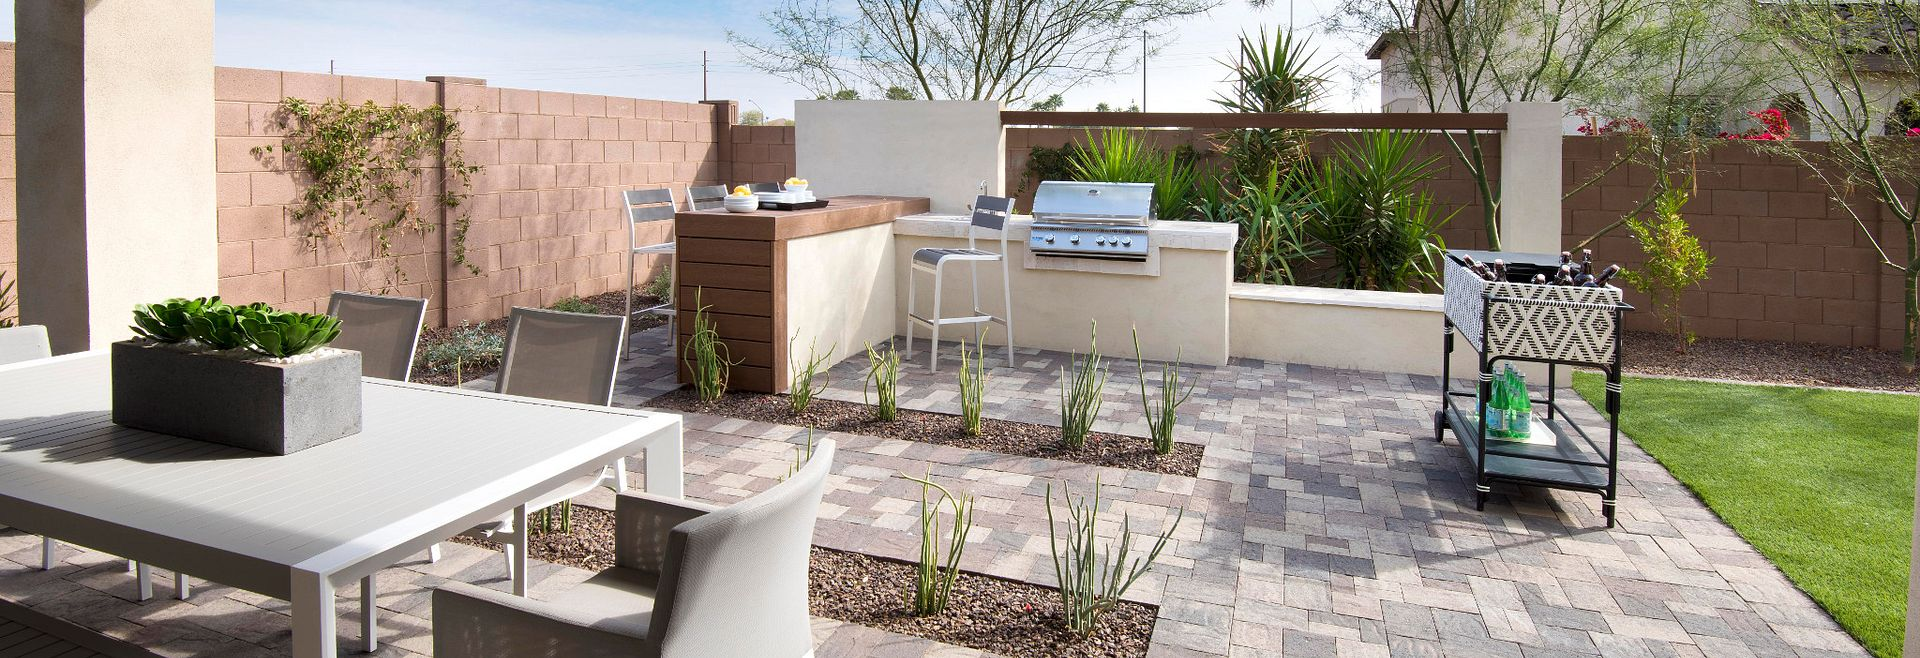 Backyard at Ambition at  Recker Pointe